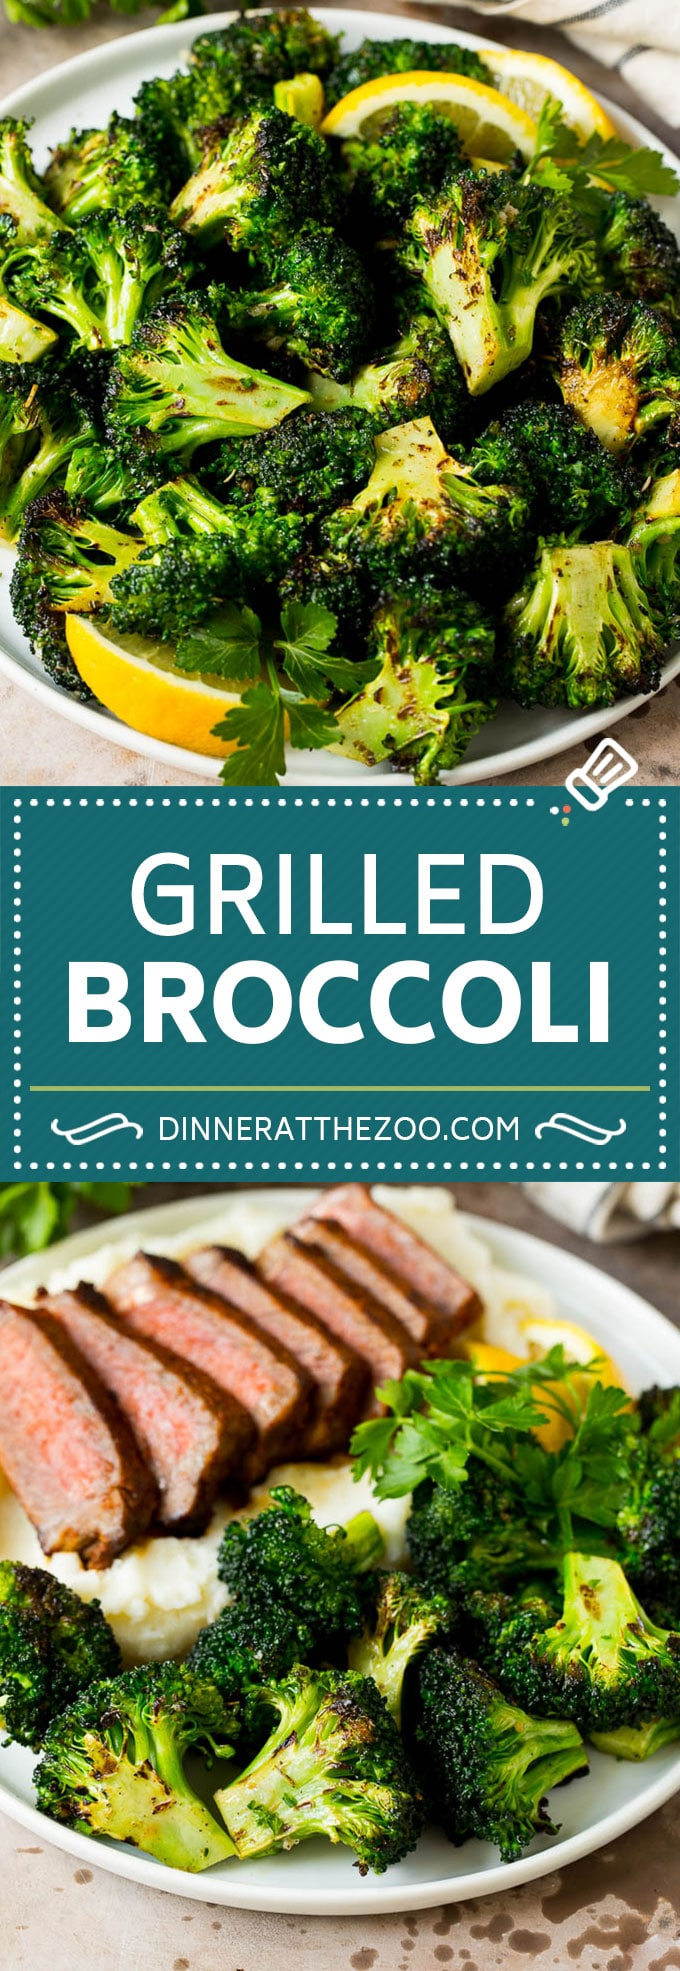 Grilled broccoli is packed with flavor and is a colorful and healthy side dish! #broccoli #dinneratthezoo